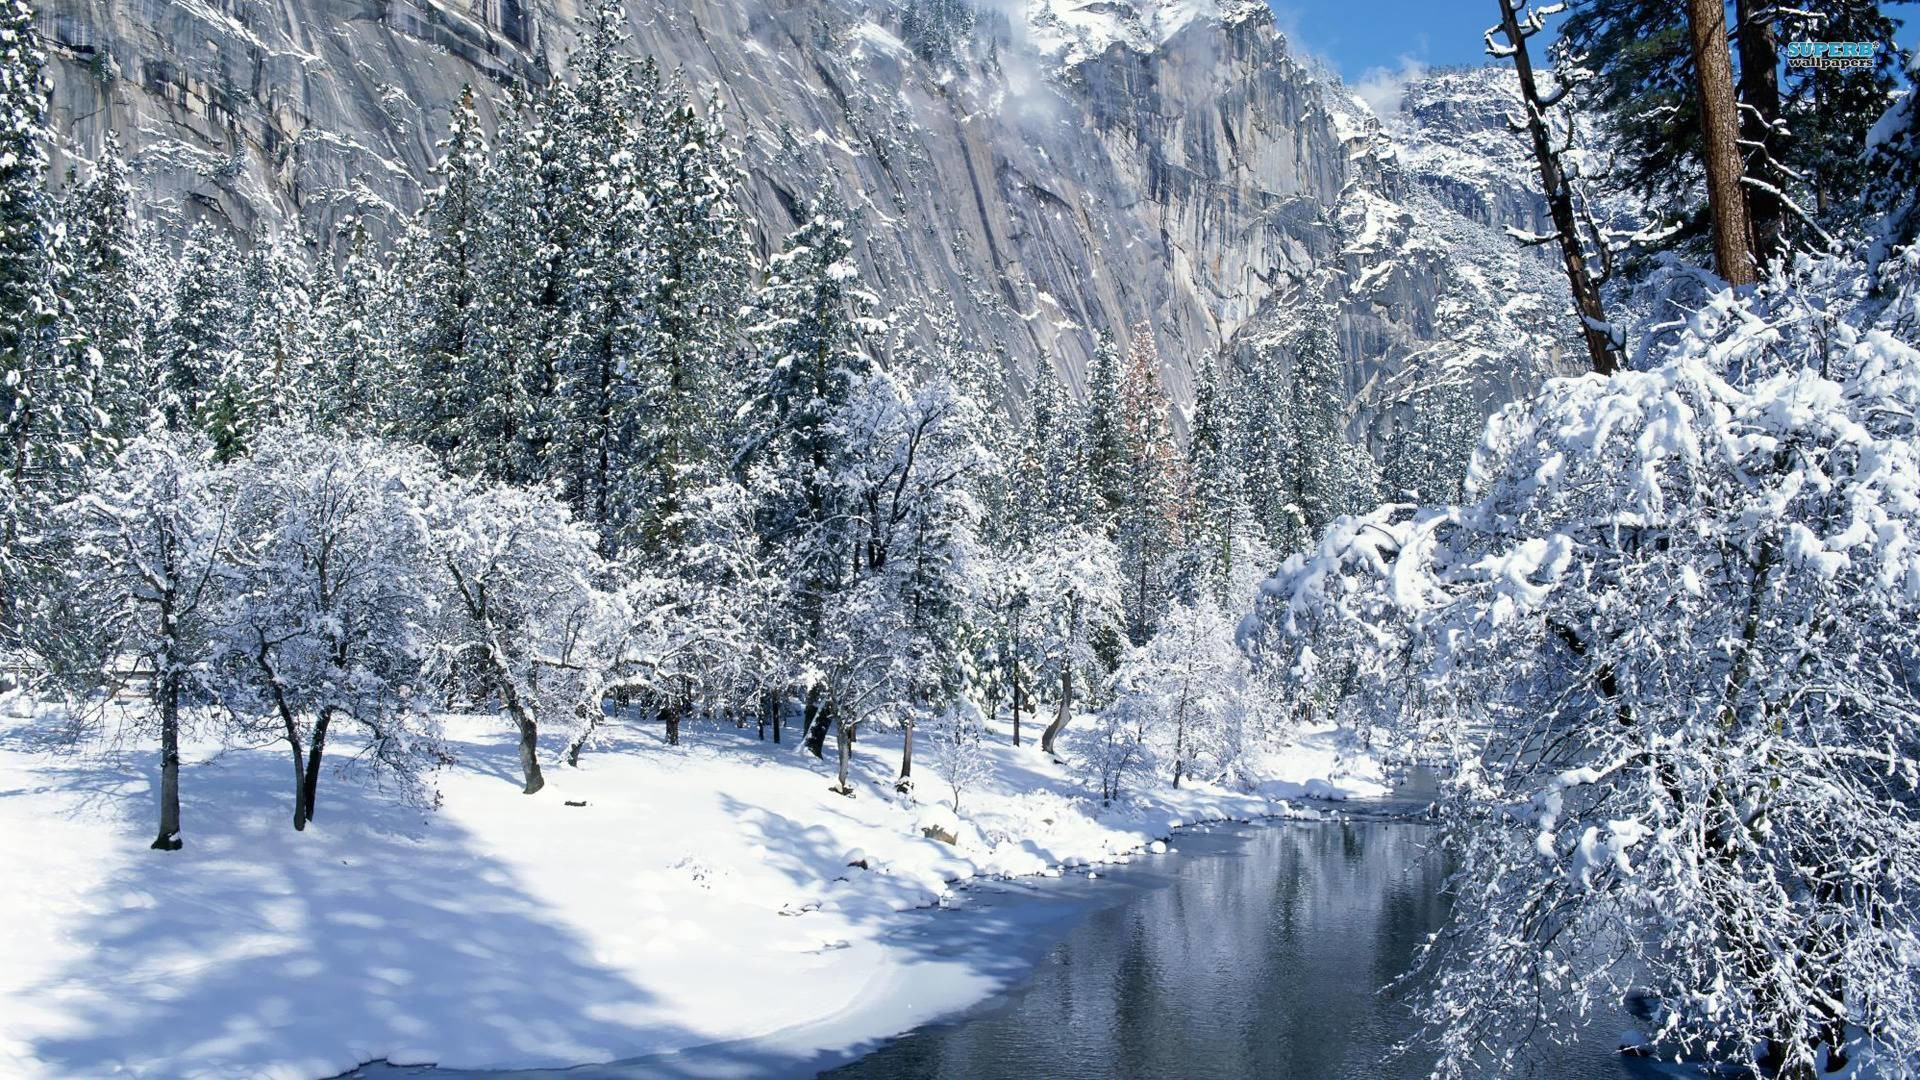 Creek in the snowy mountains wallpaper – Nature wallpapers – #